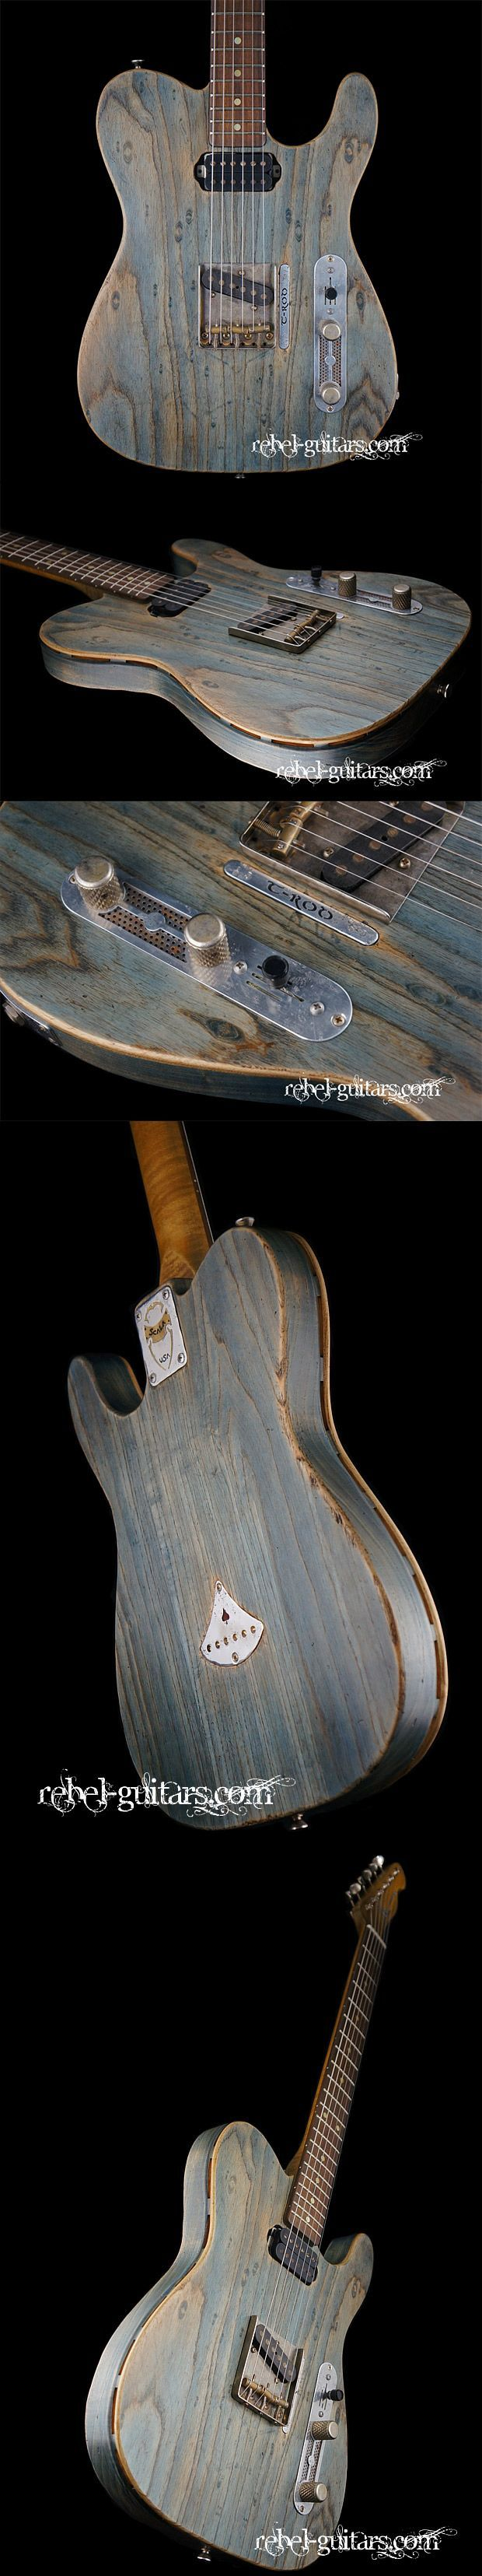 Scala Guitars T-Rod Prototype in Worn Denim. More at: http://rebel-guitars.com/scala-guitars-t-rod-prototype-in-worn-denim/